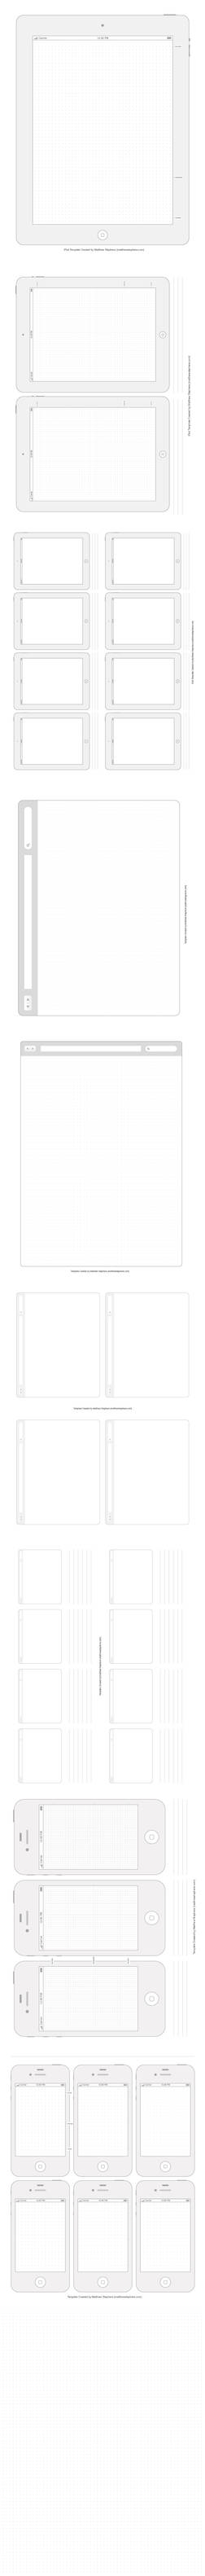 Printable UI Templates for iPhone 4s, iPad 2, etc.